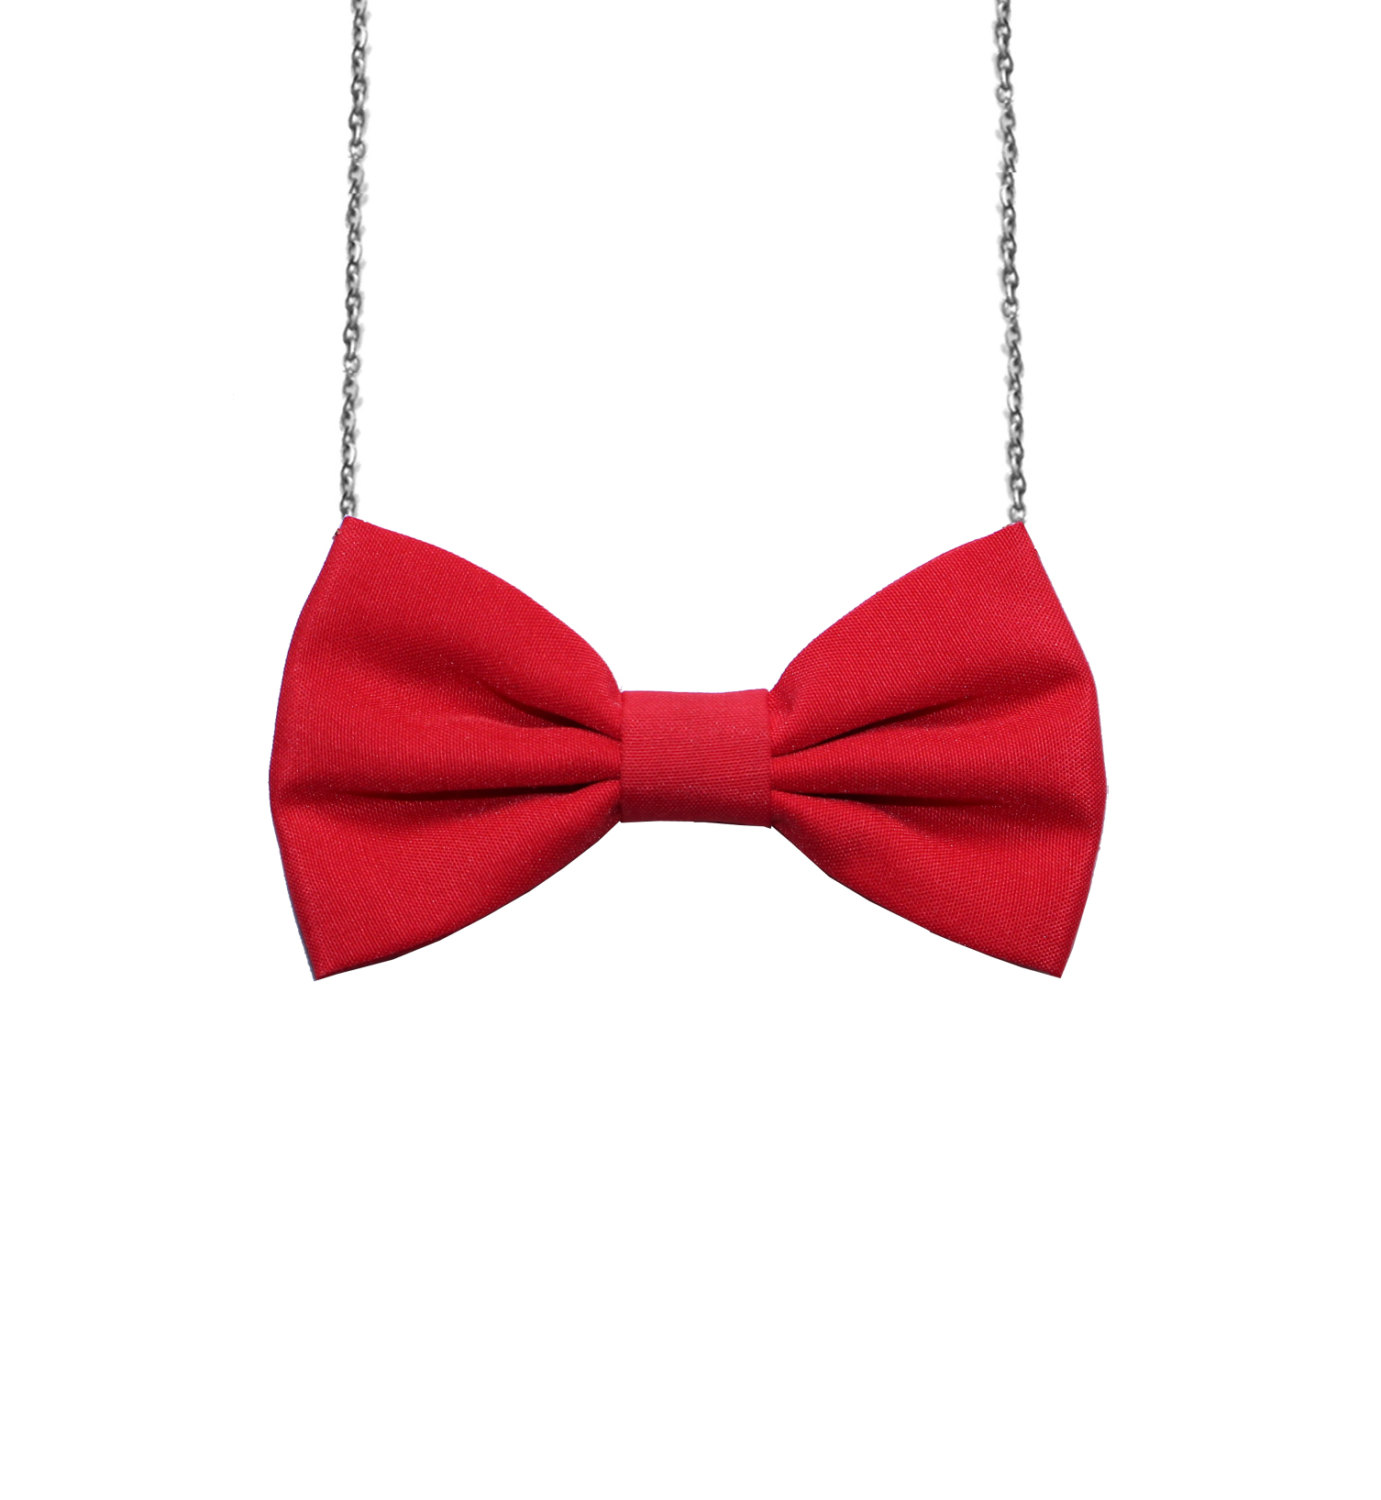 Simple Red Bow Tie Necklace Girls Bowtie Bow tie for